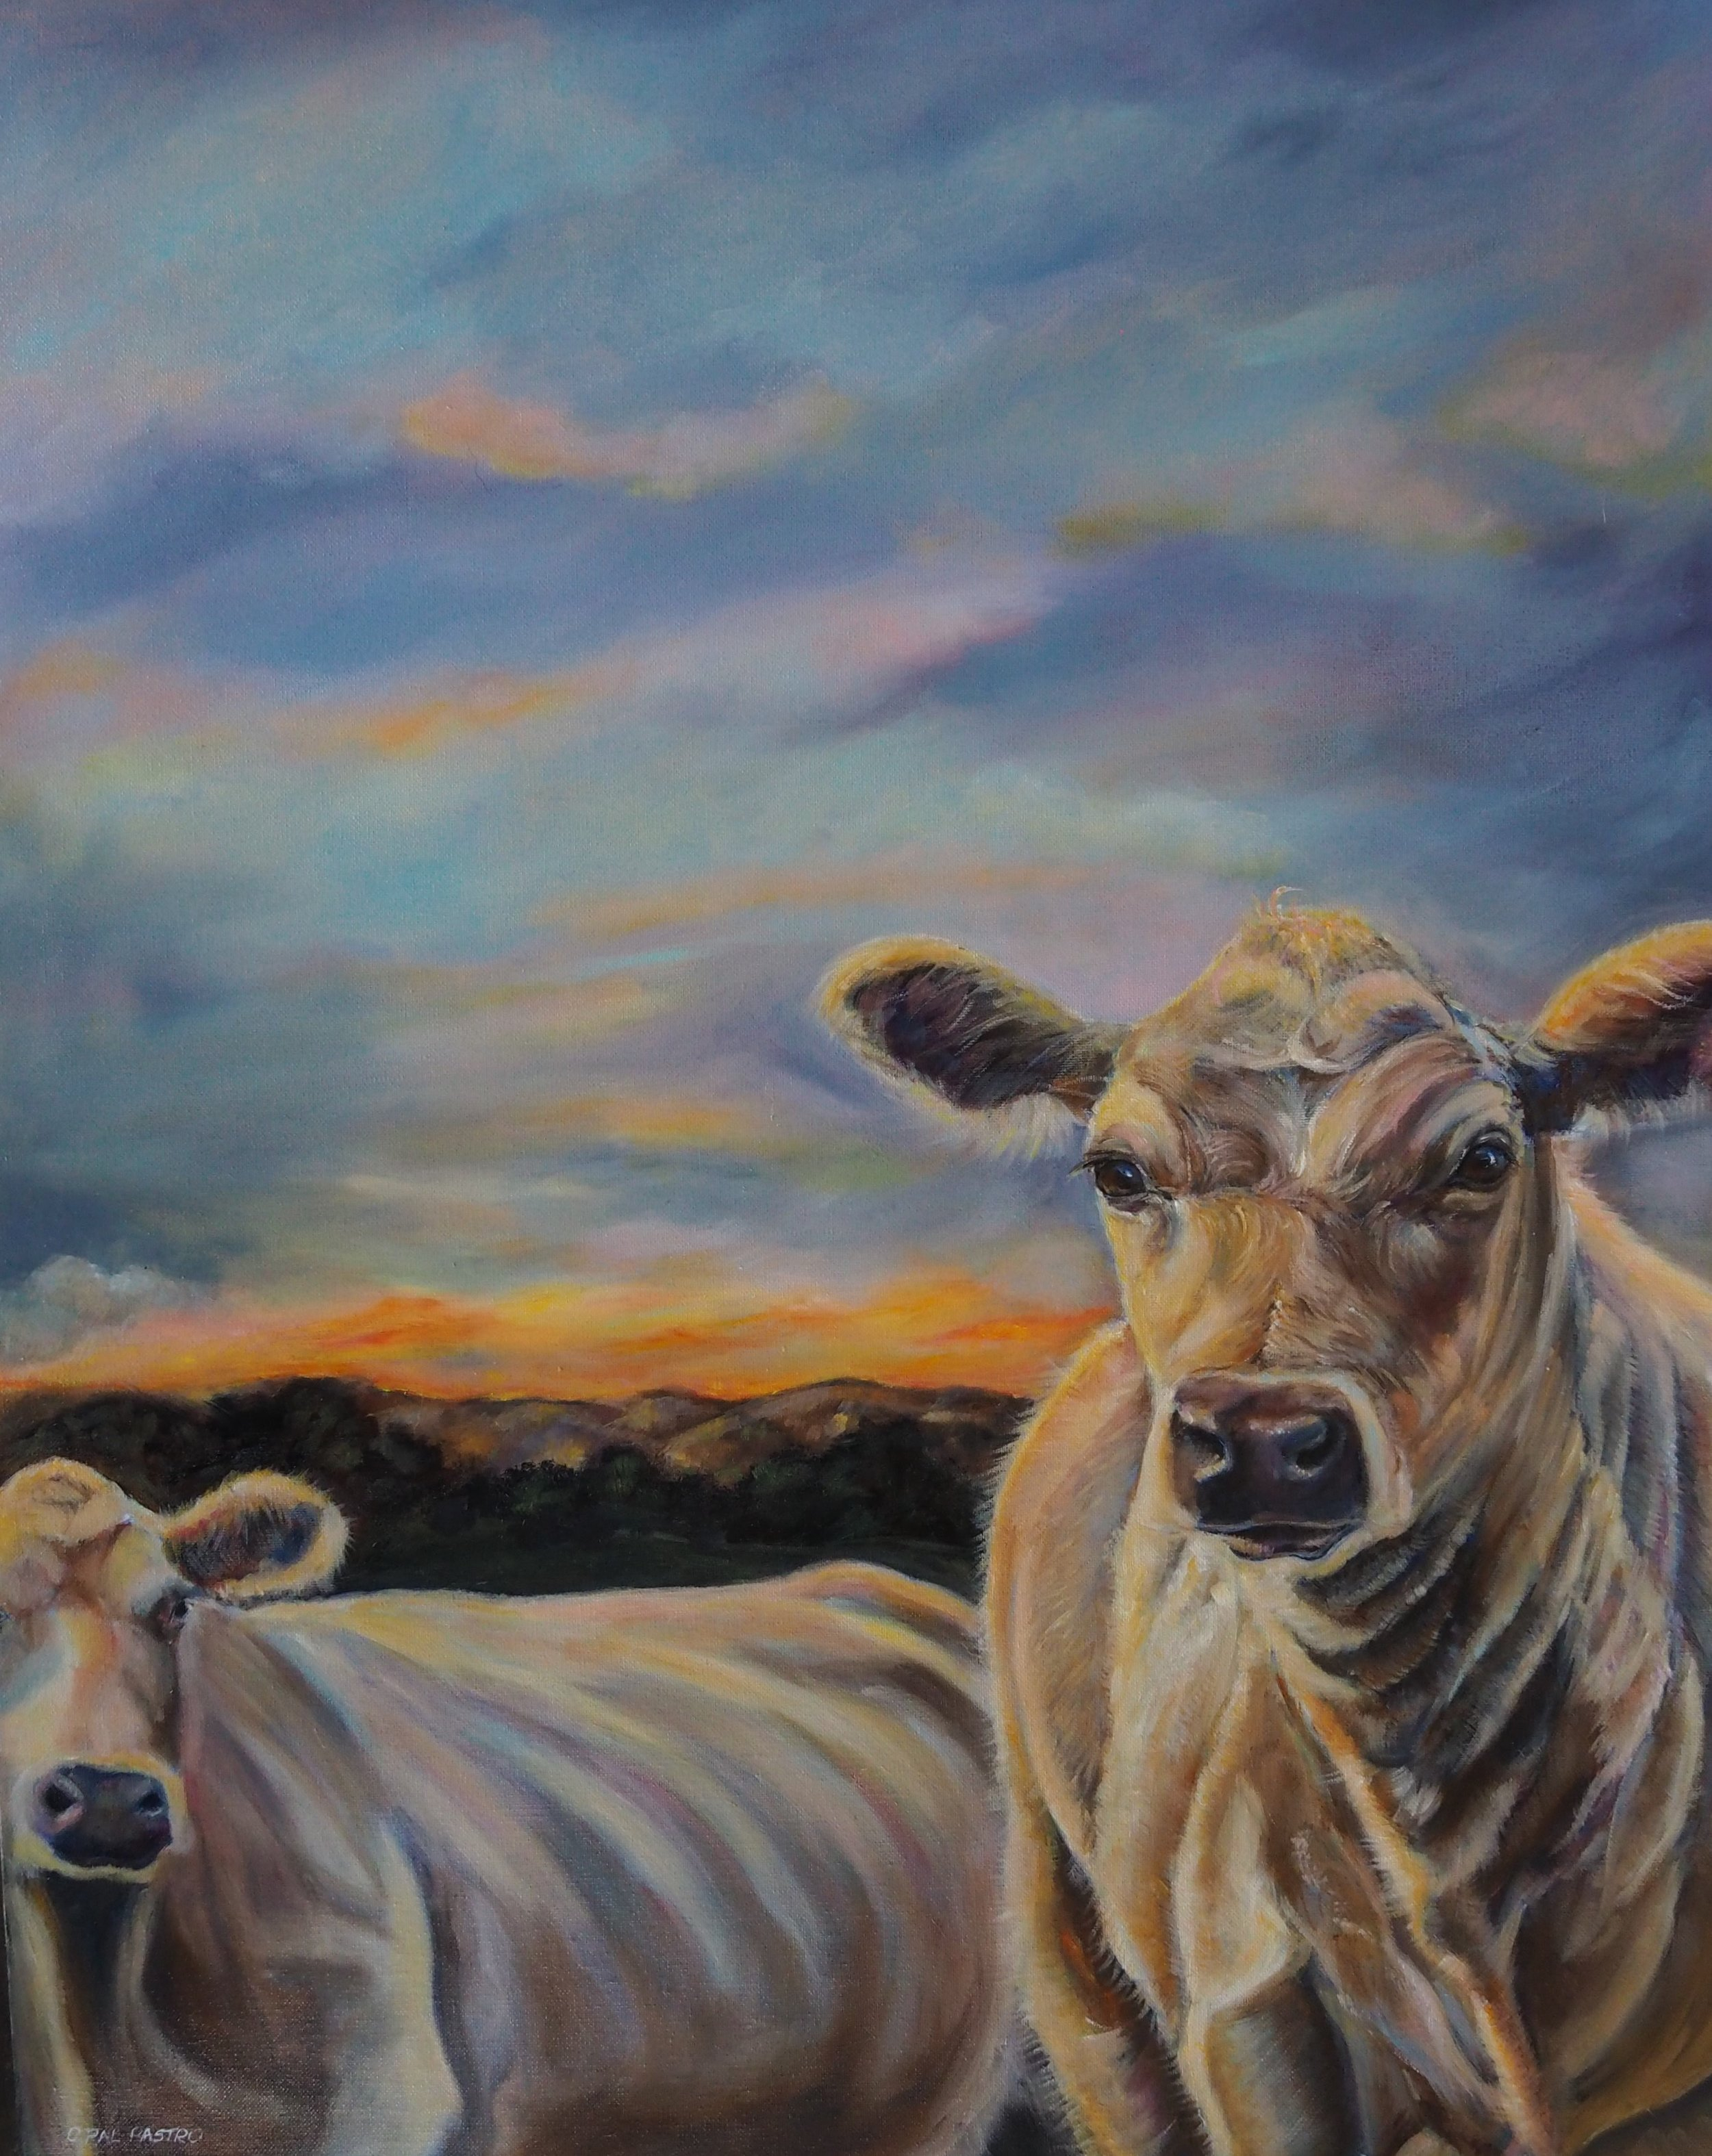 COW ART OF MURRAY GREY COWS TITLED SUNSET ON THE PLATEAU BY OPAL PASTRO ART